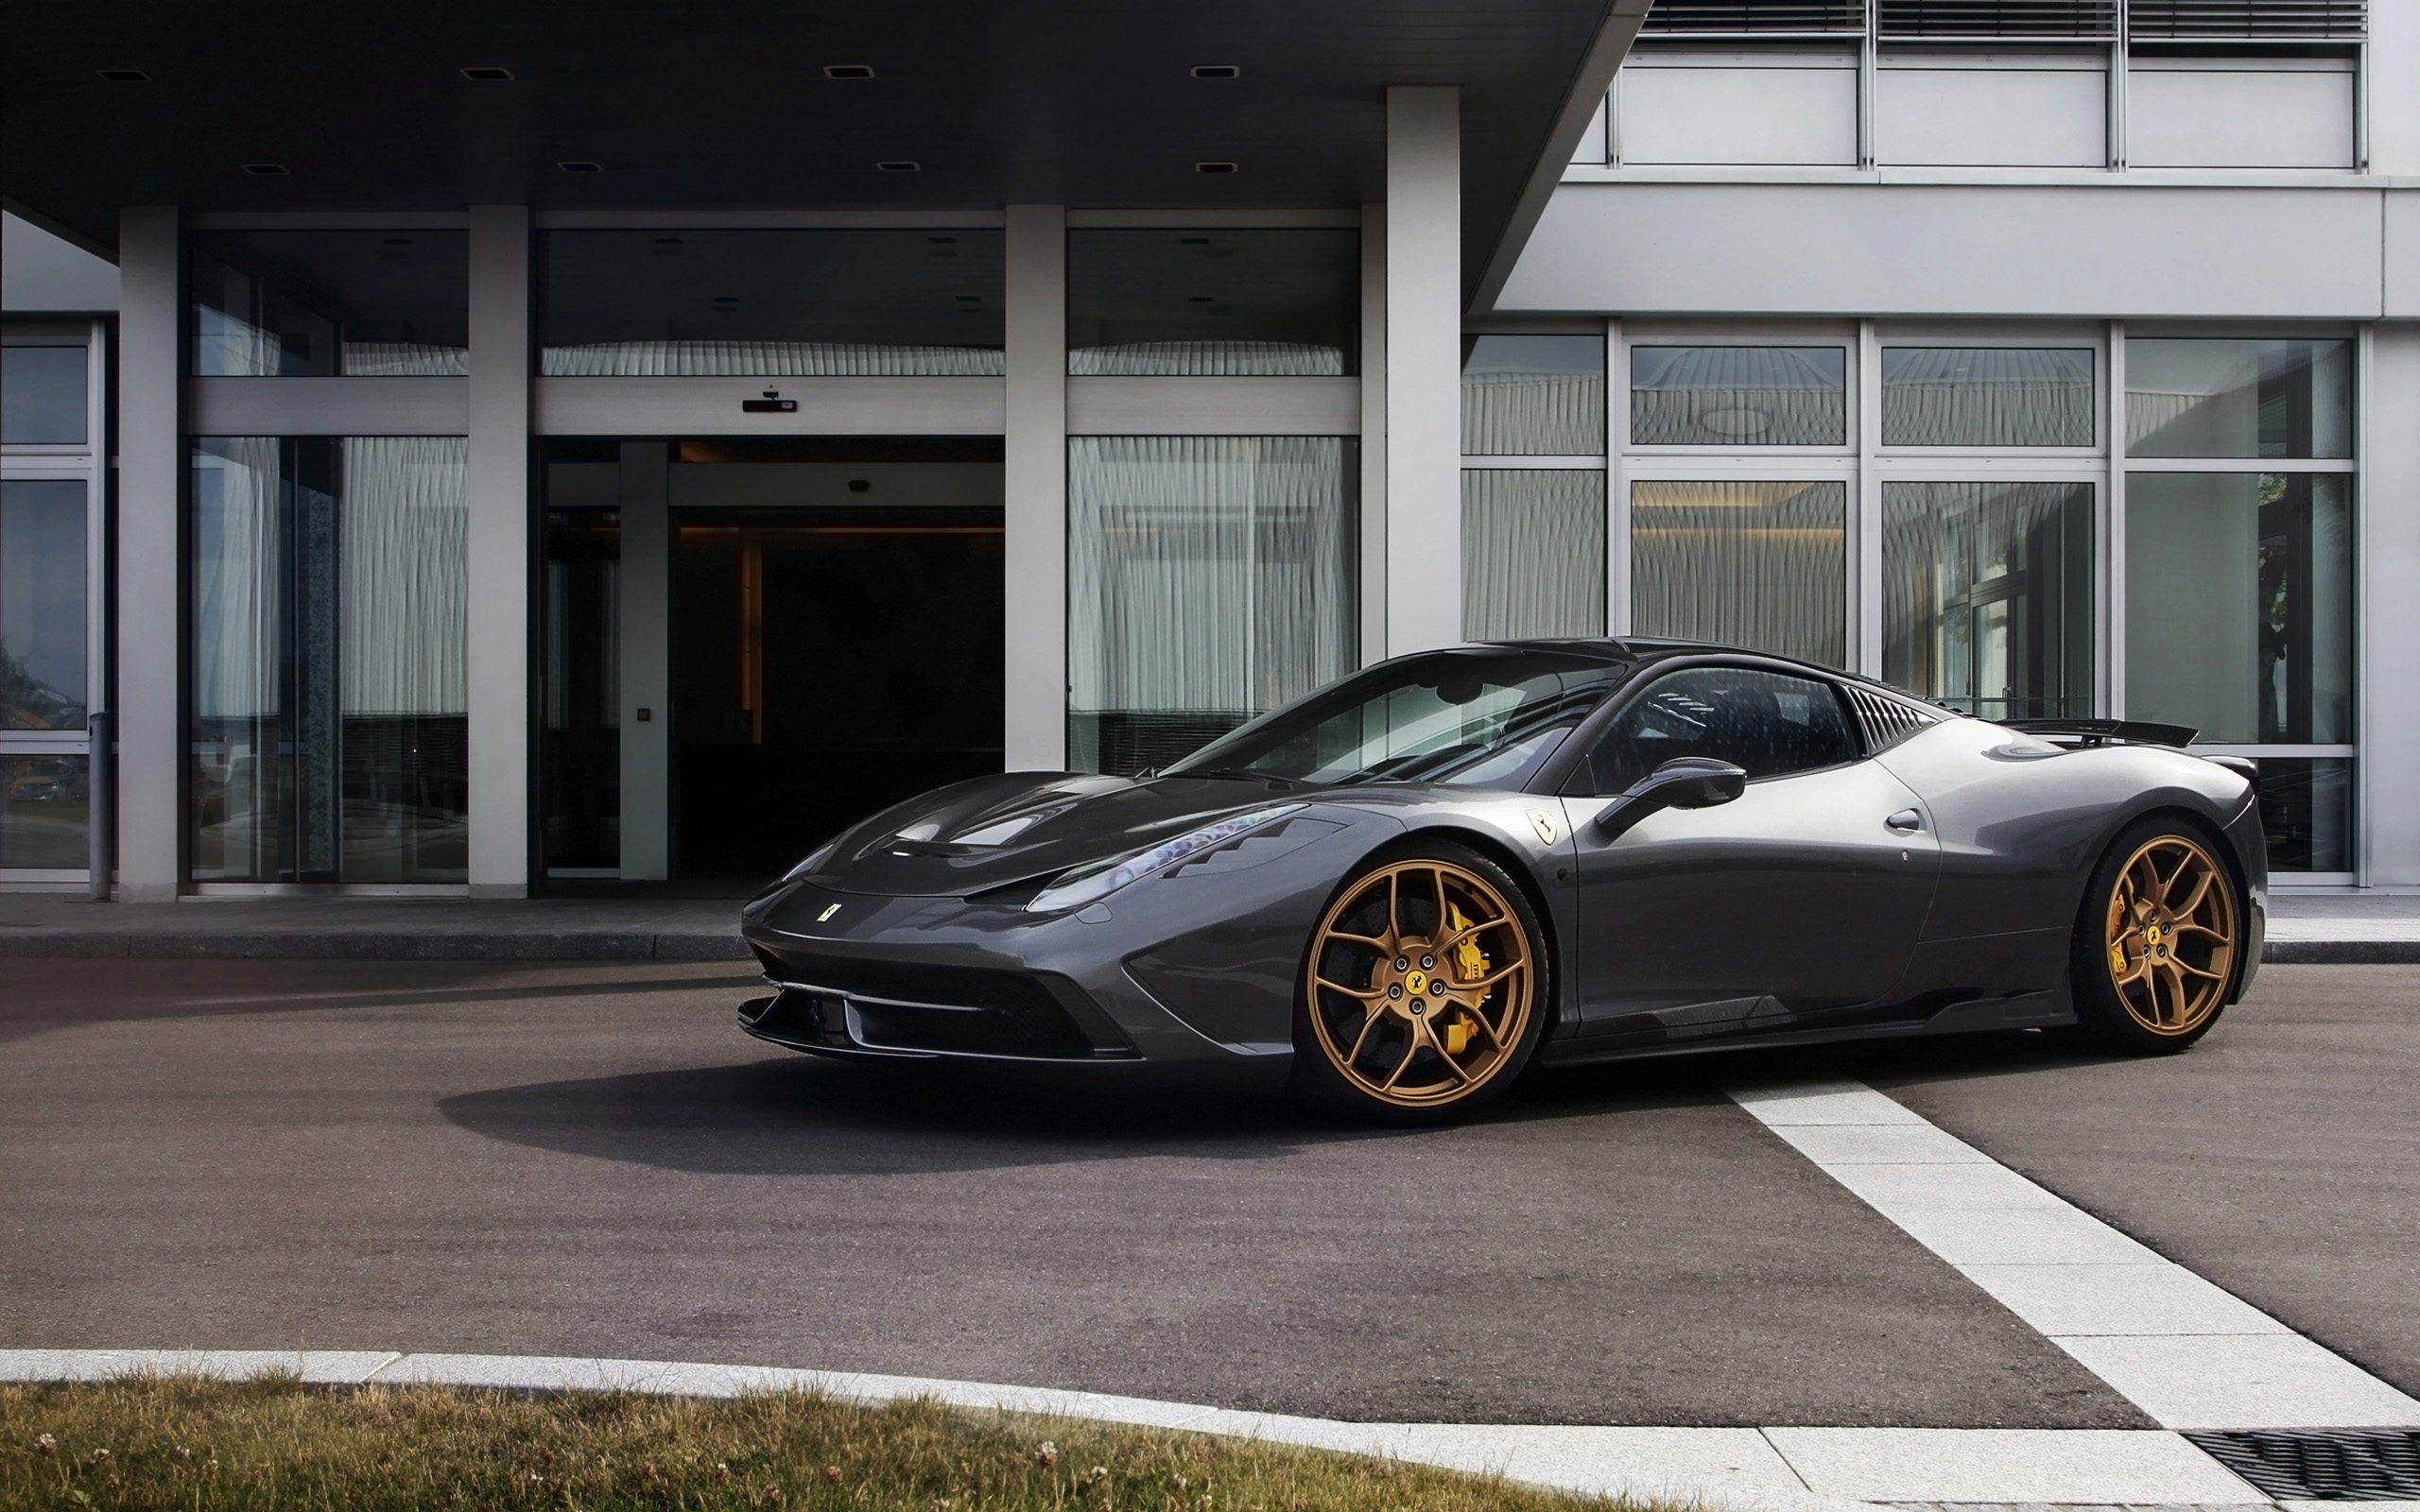 2014 Novitec Rosso Ferrari 458 Speciale 2 Wallpaper Hd Car Wallpapers Id 4793